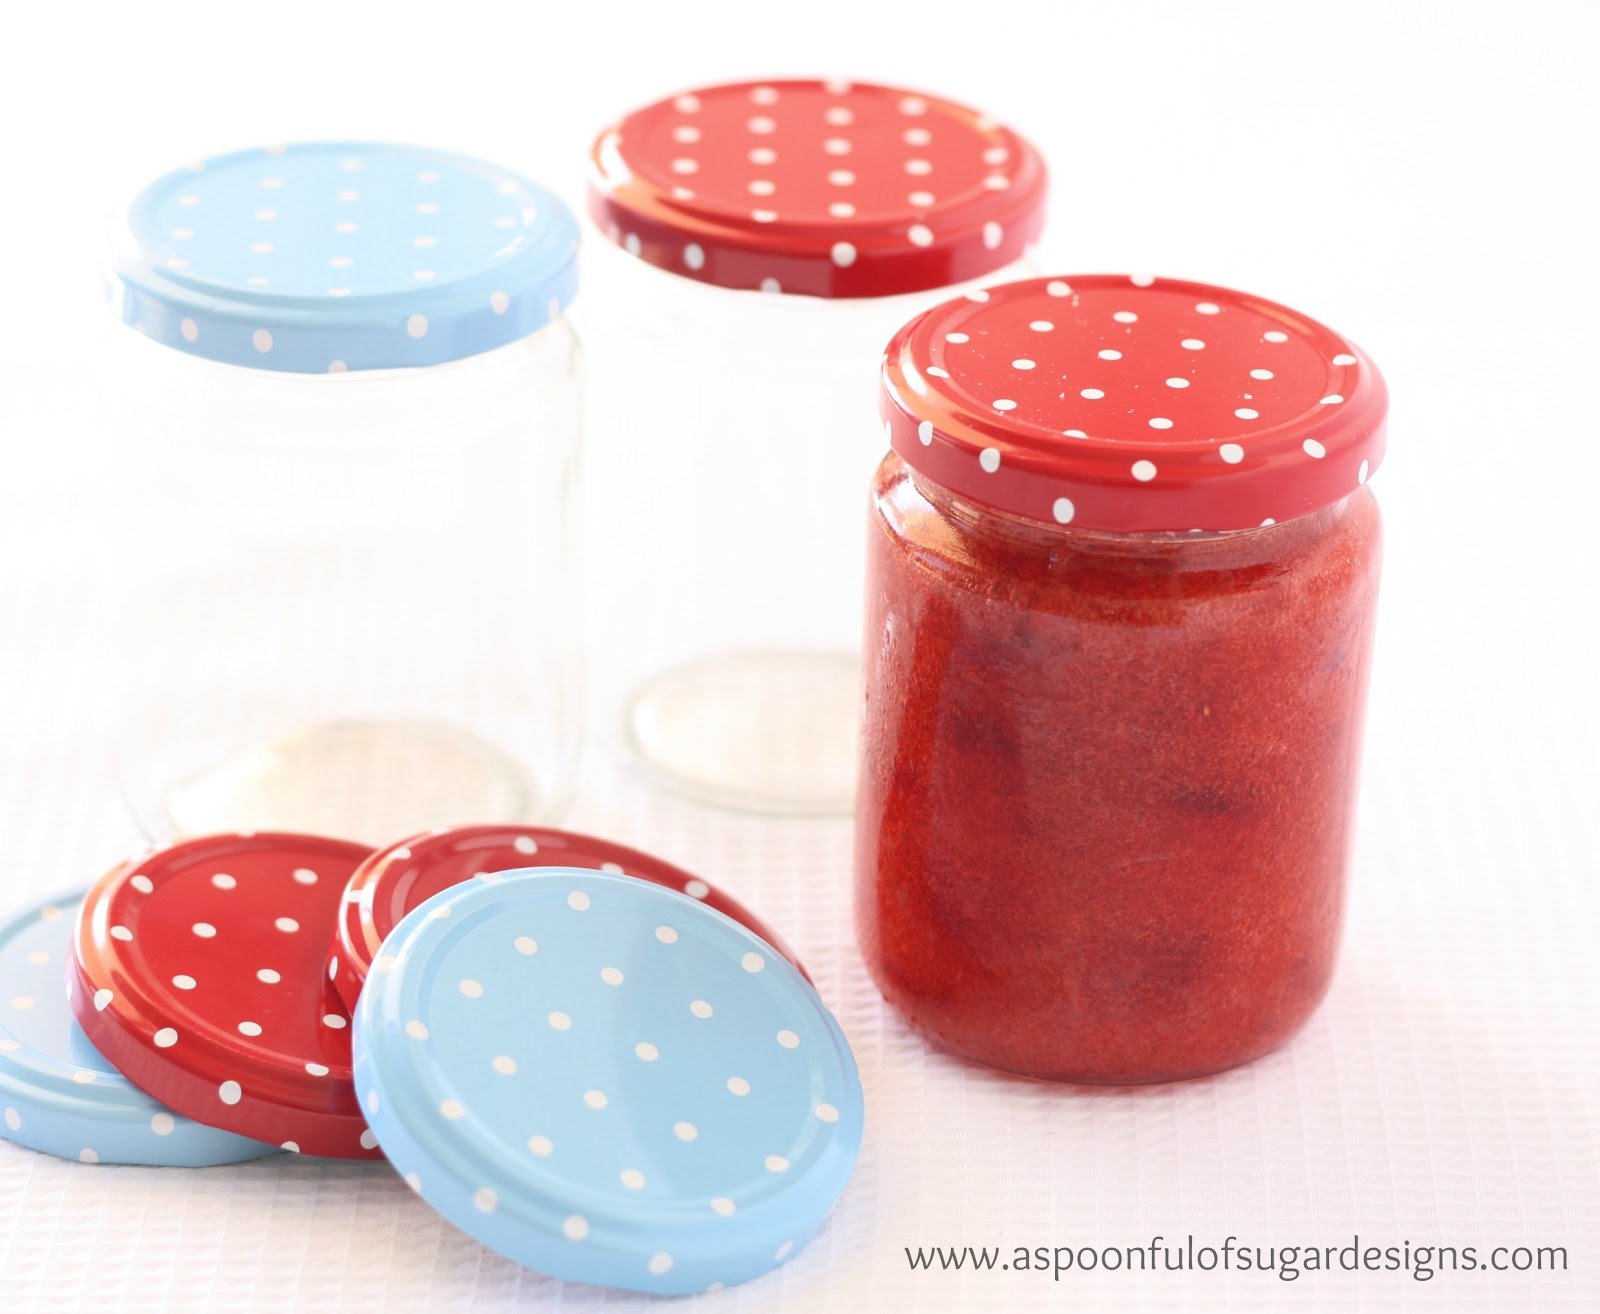 Strawberry Jam - A Spoonful of Sugar